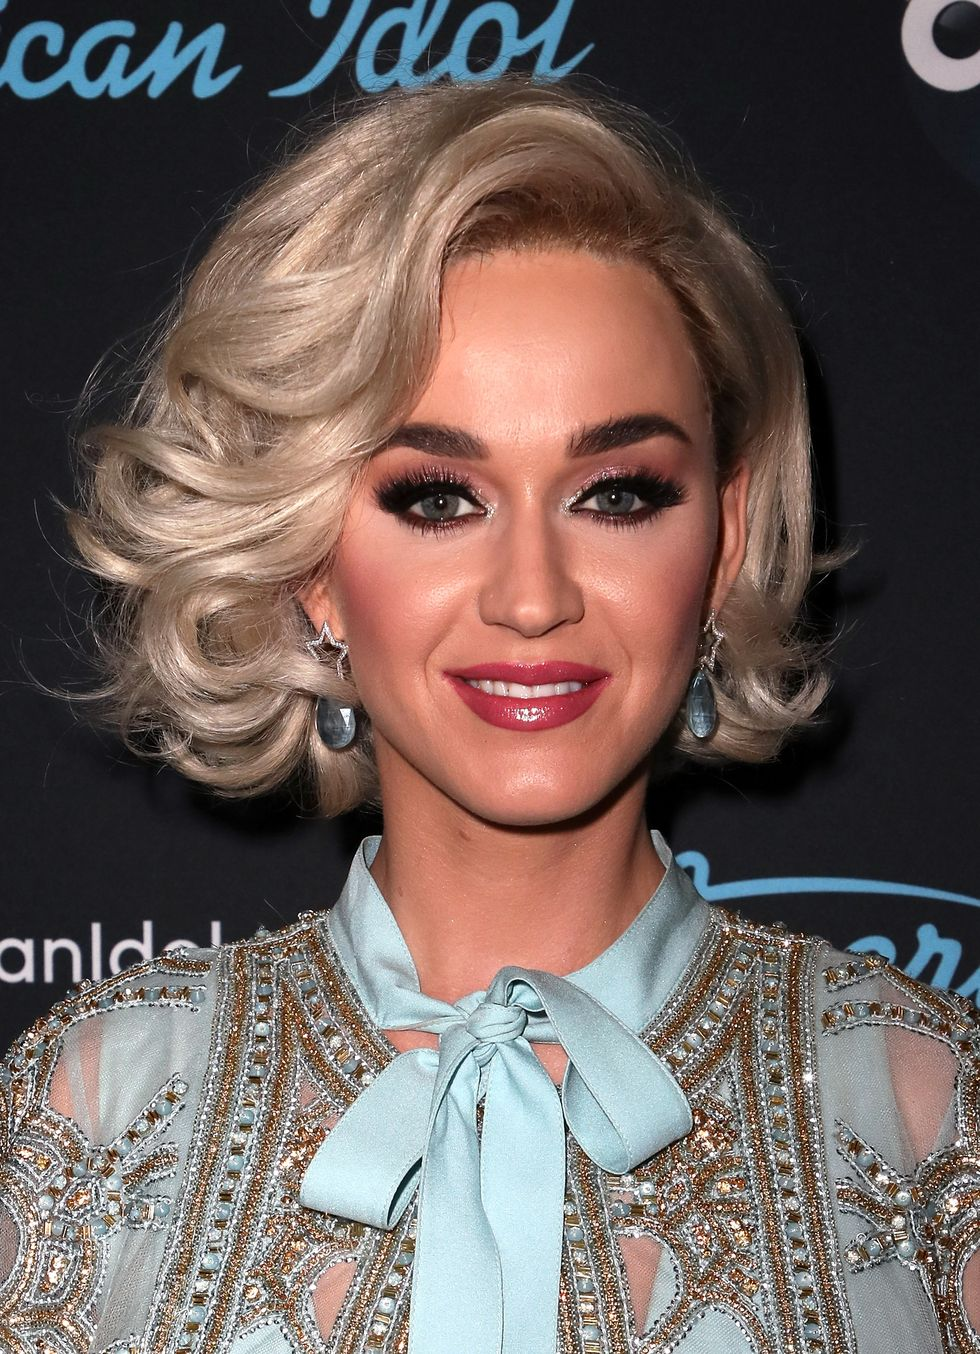 celebrities don't drink alcohol_Katy Perry